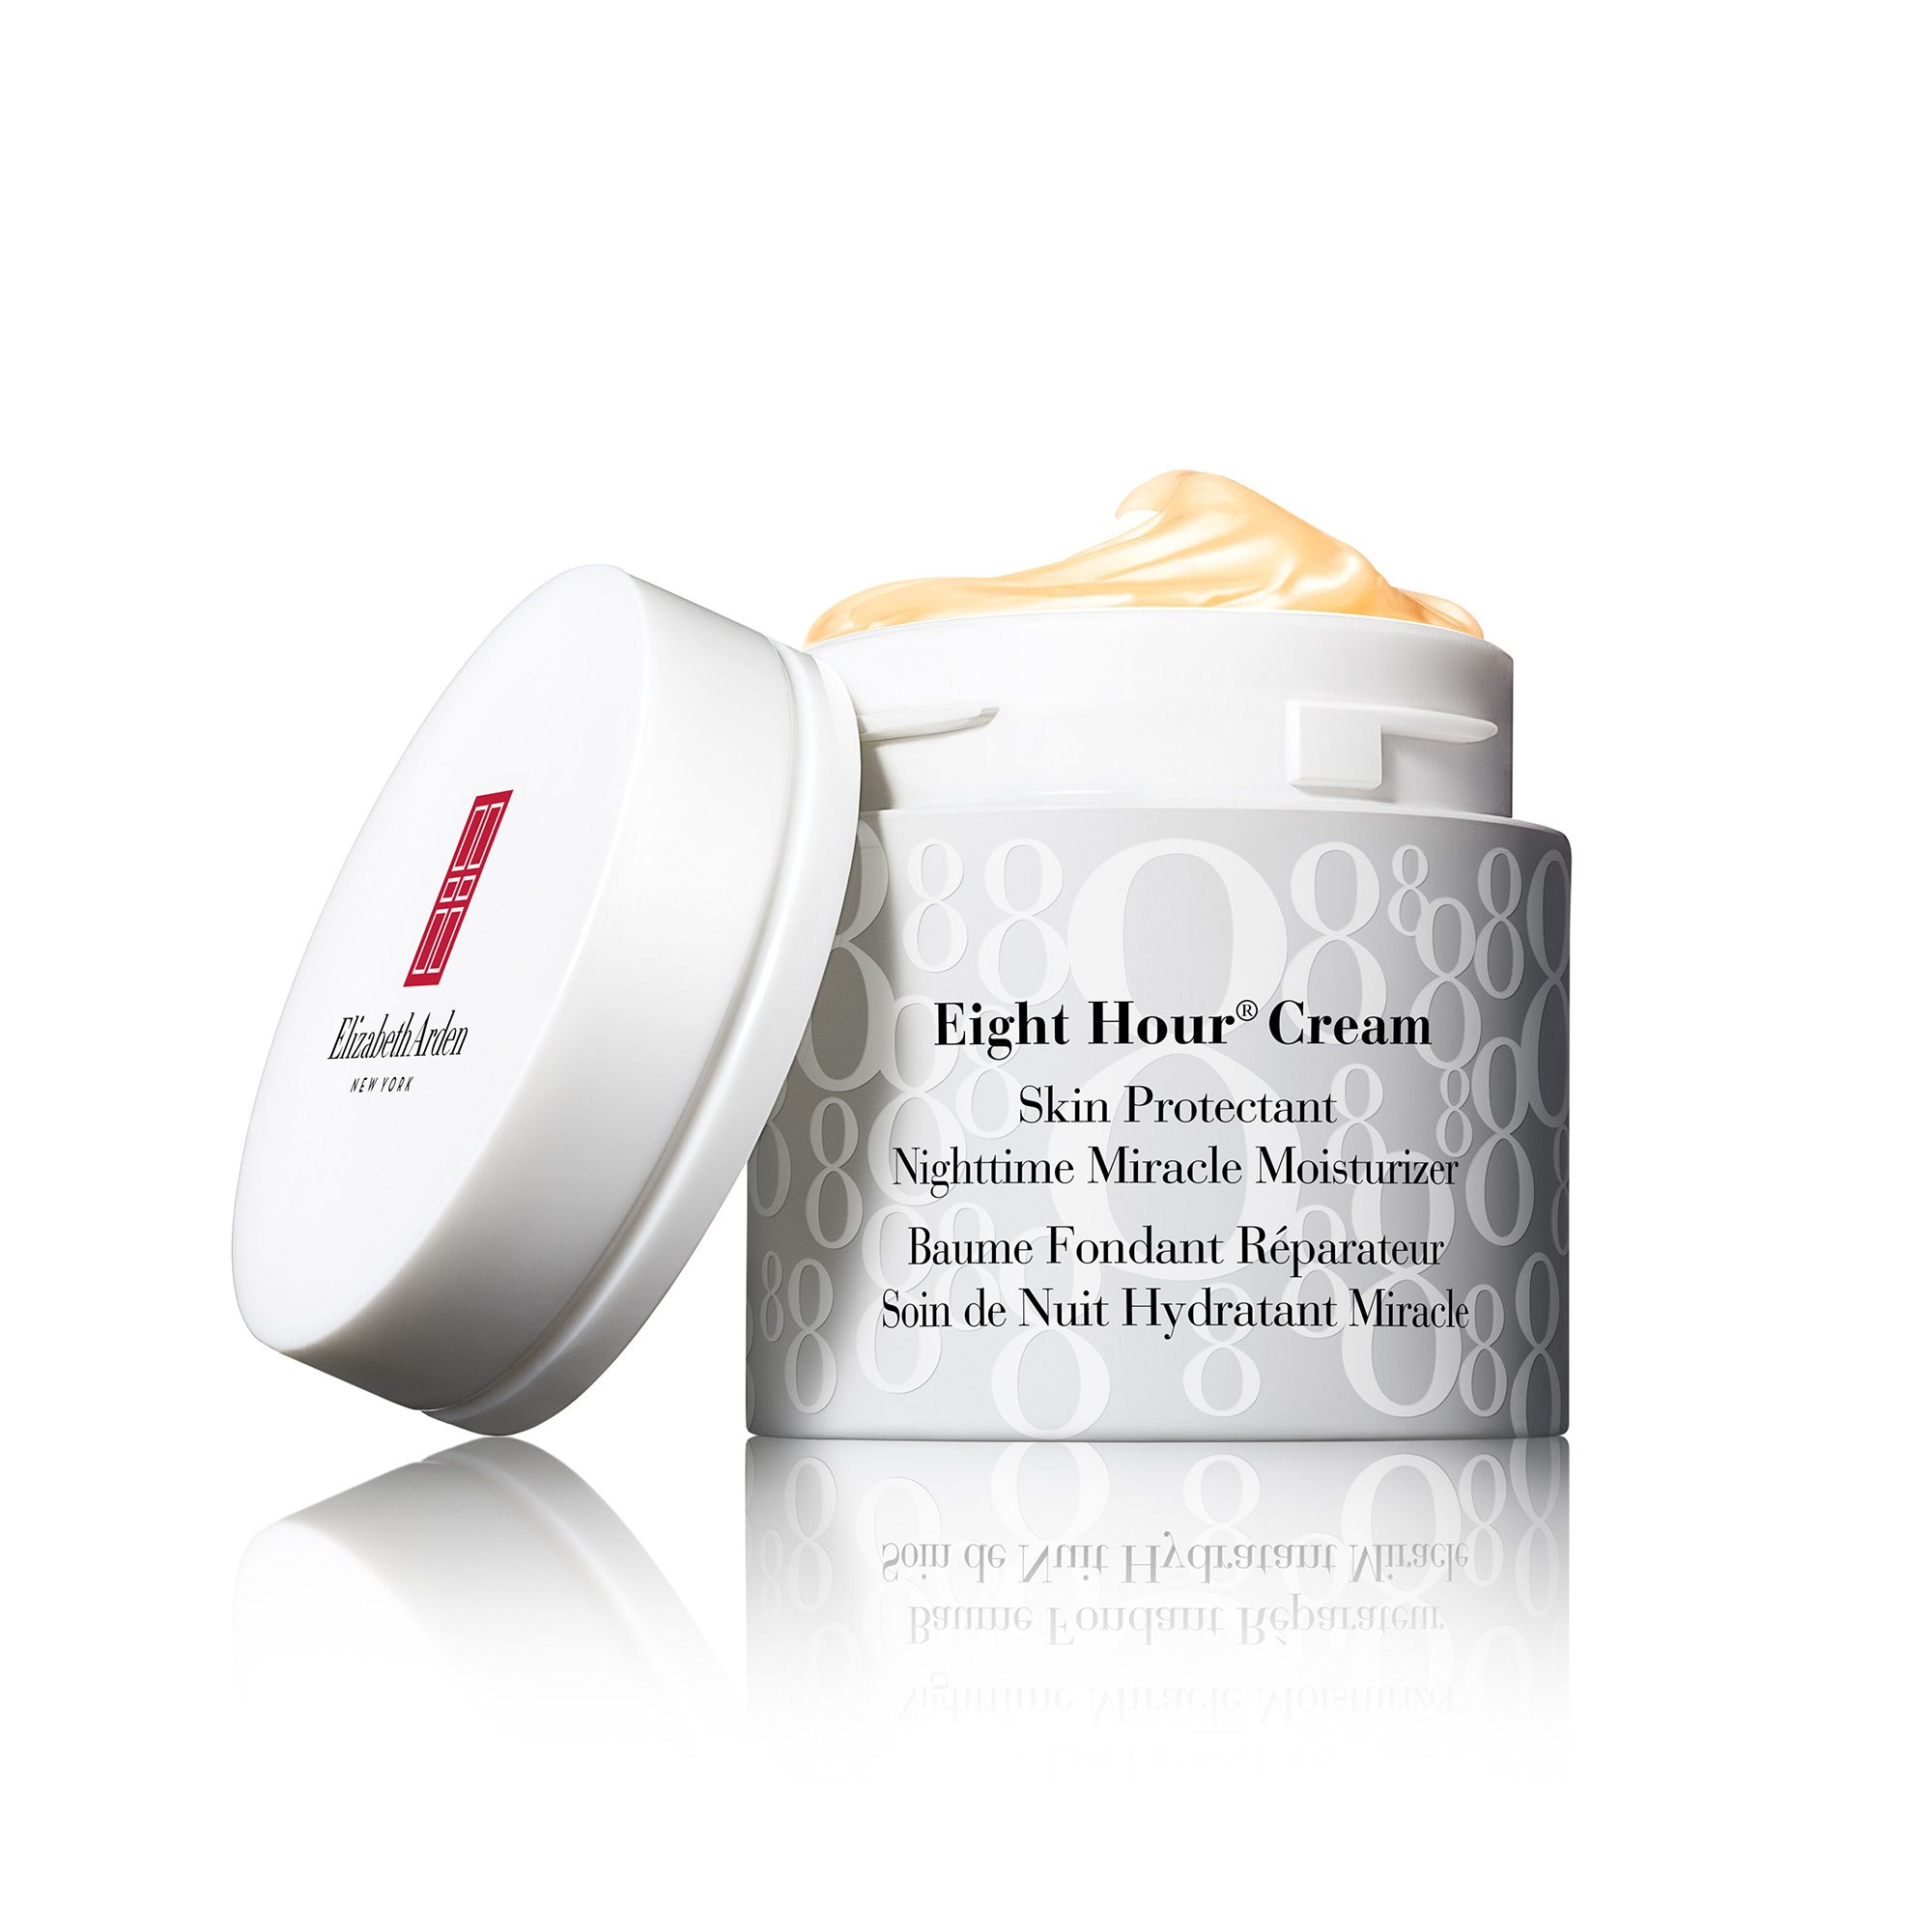 Eight Hour Cream Skin Protectant Nighttime